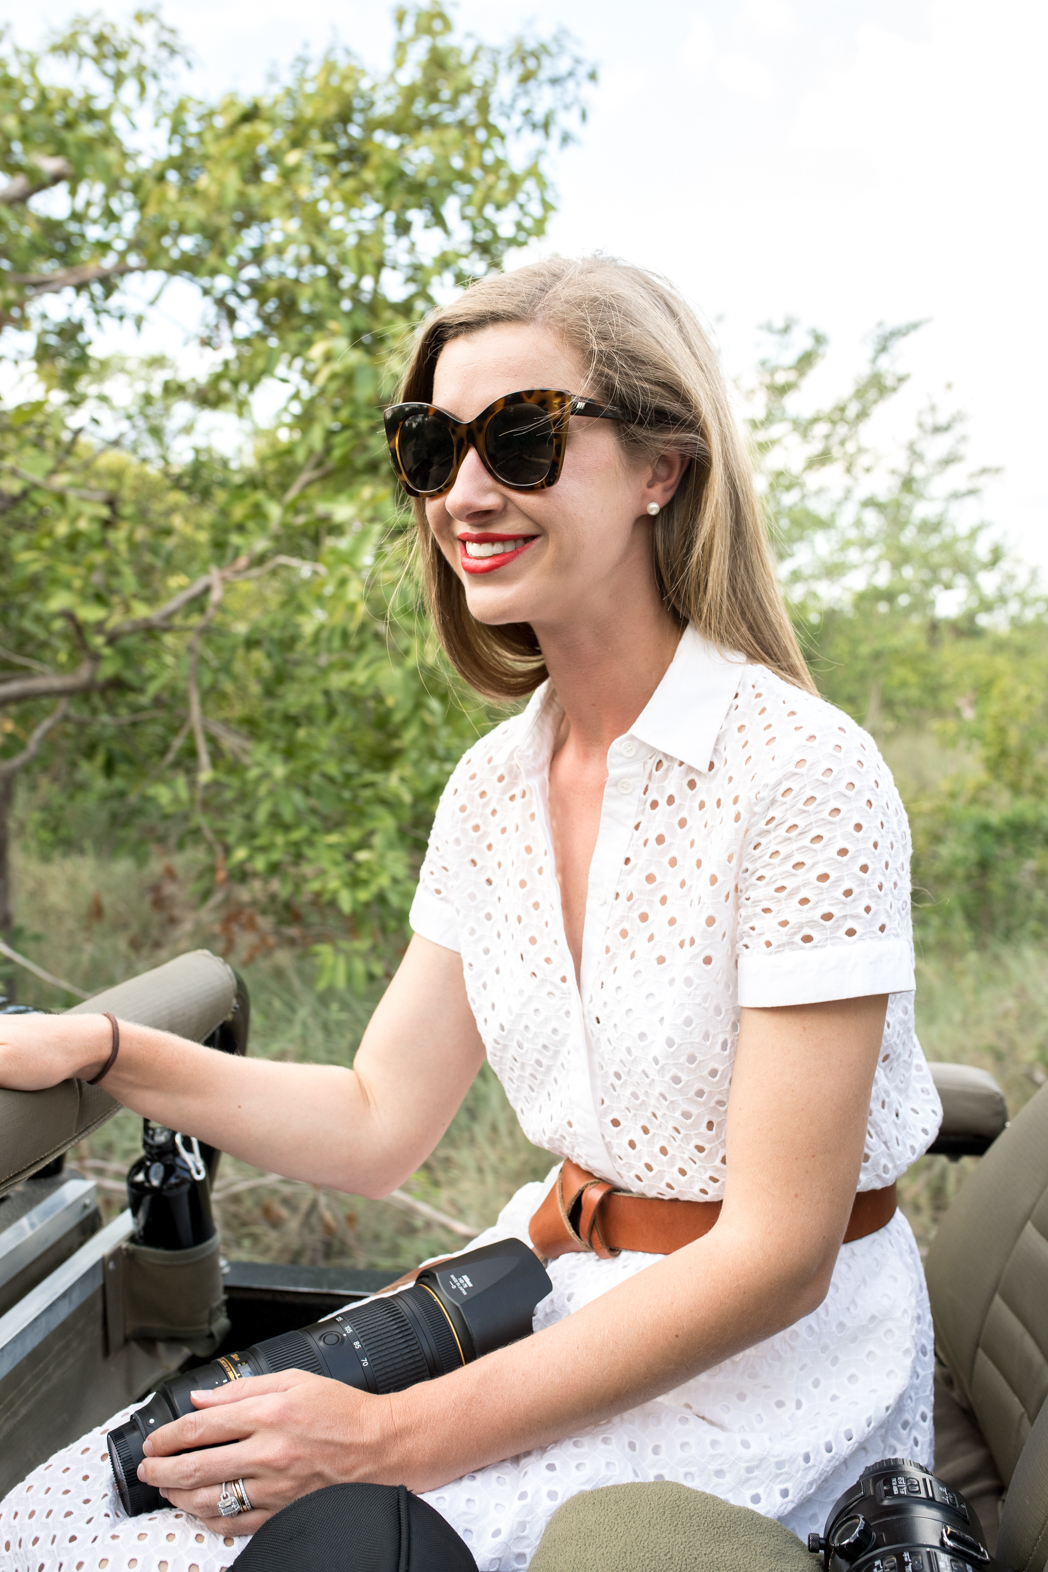 Stacie Flinner Royal Malewane Safari Honeymoon-5.jpg